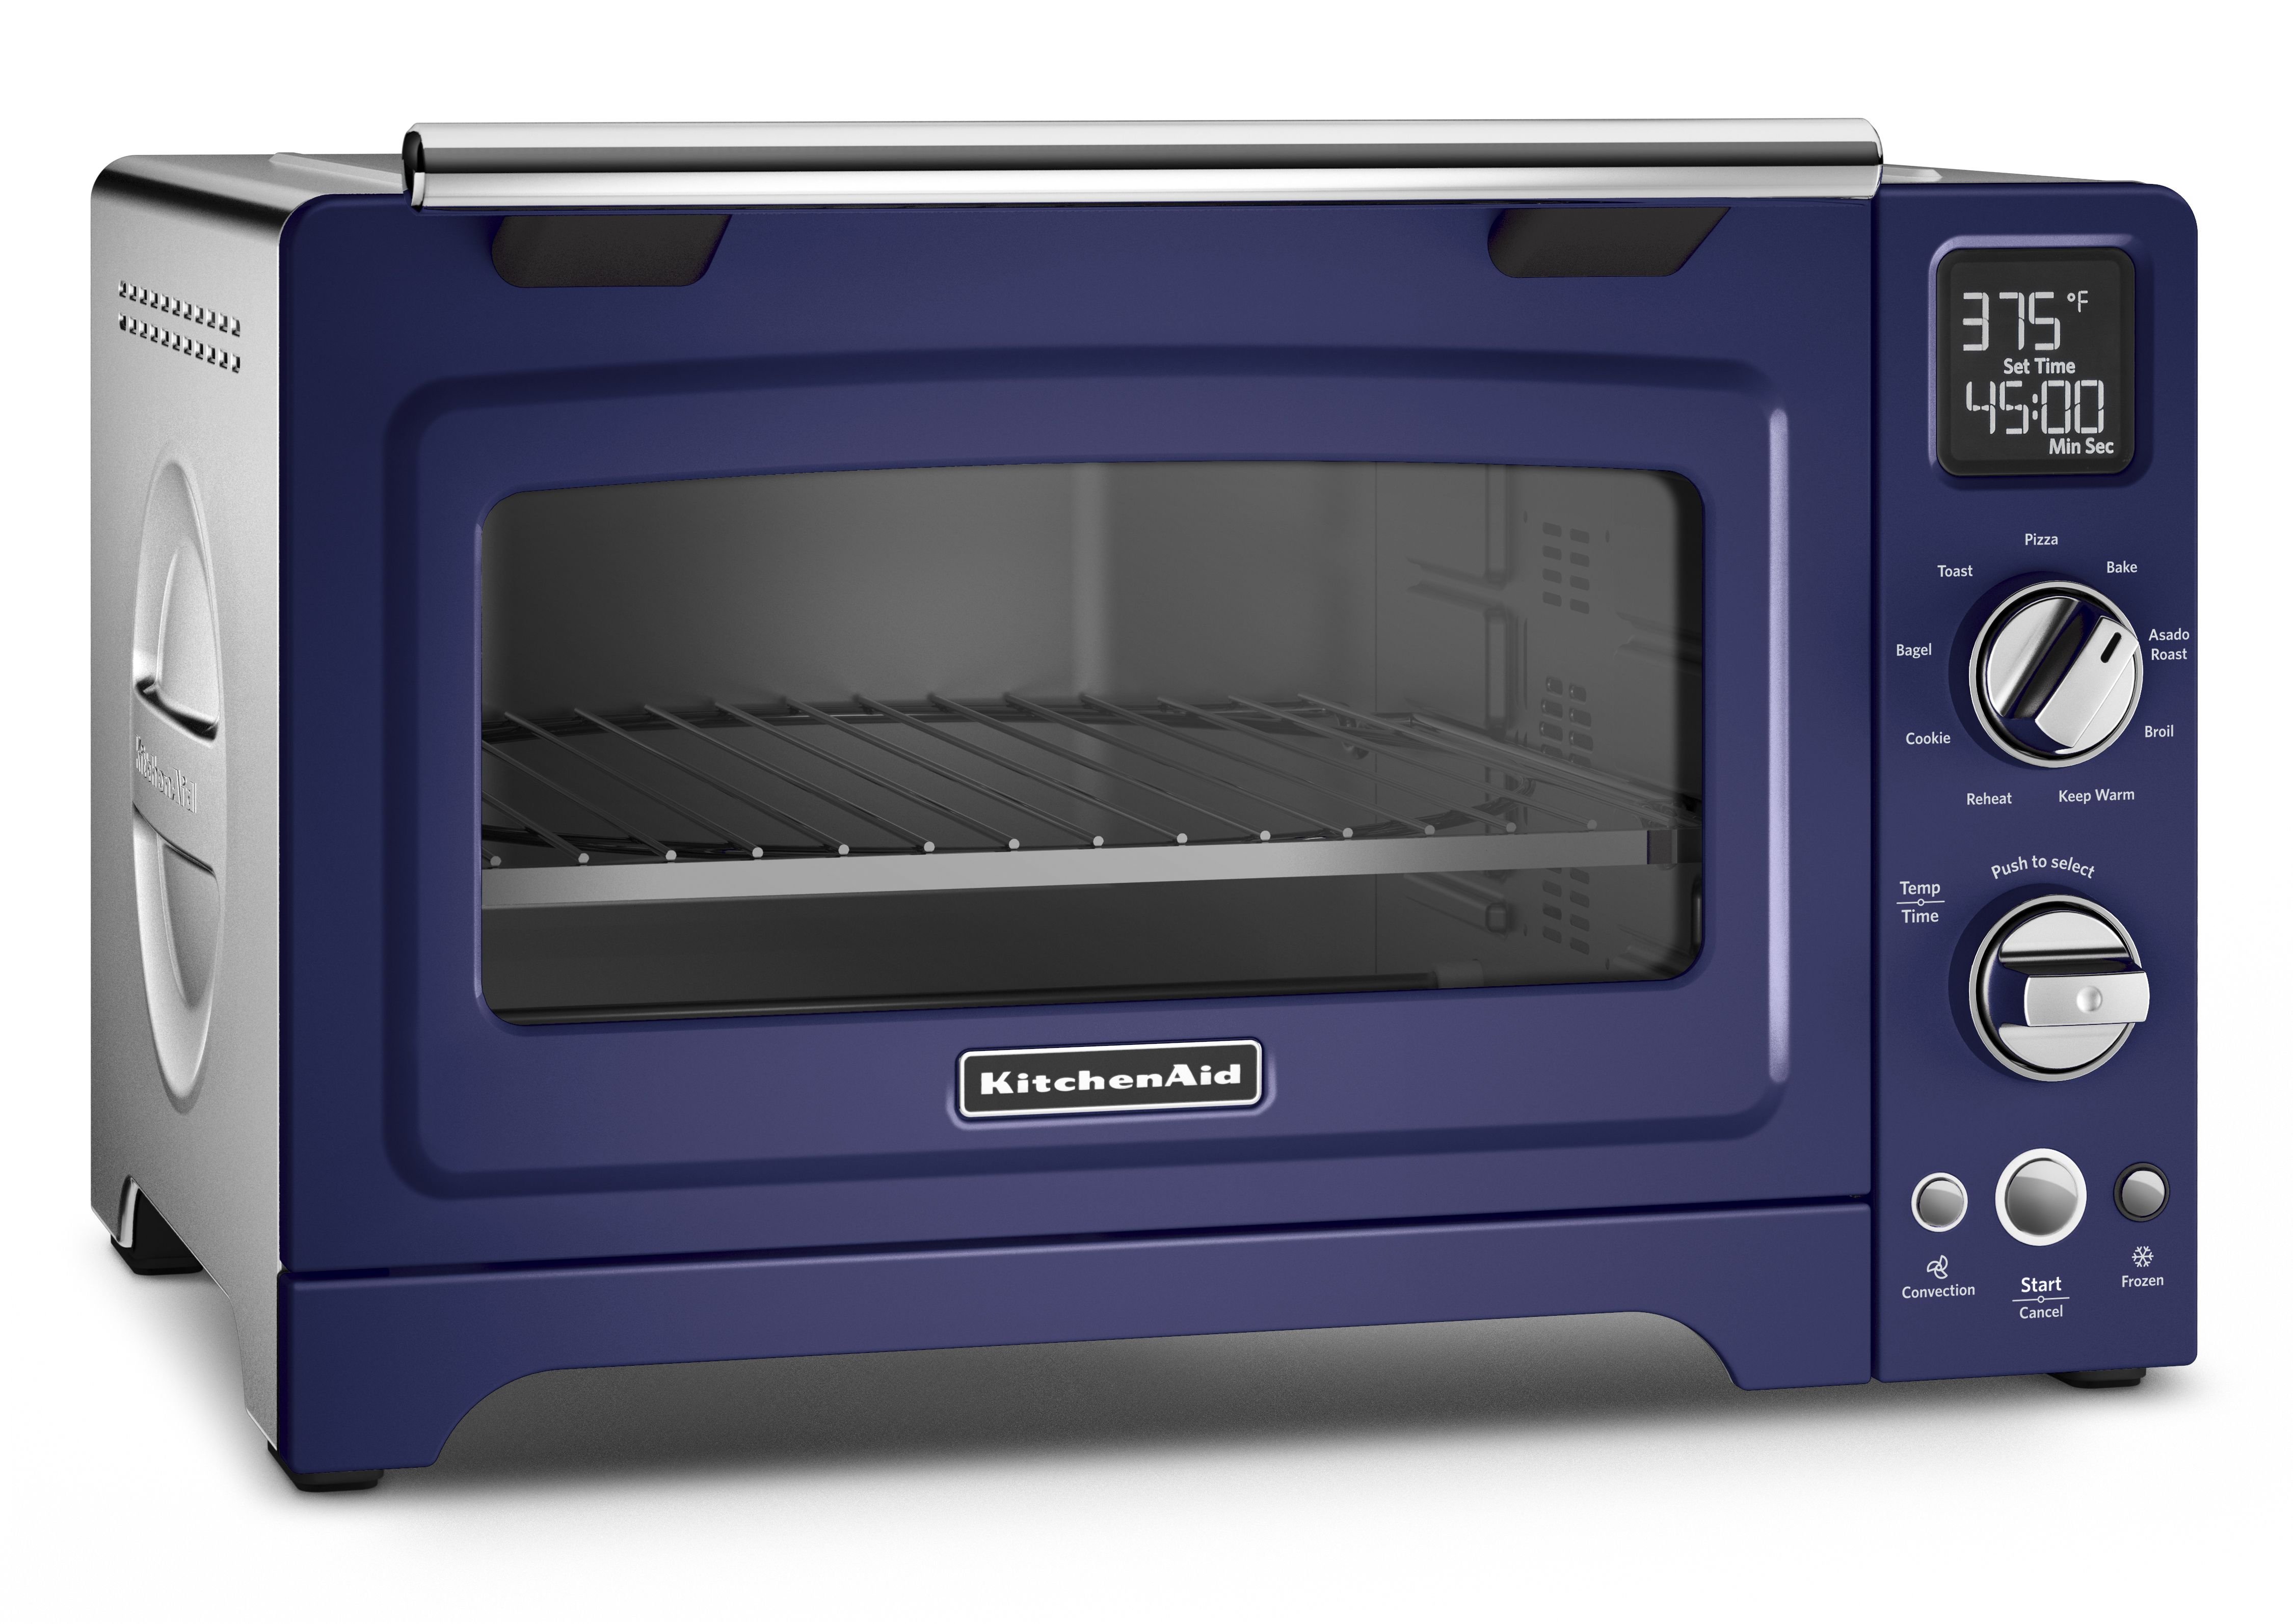 The Kitchenaid 12 Inch Convection Digital Countertop Oven Allows You To Enjoy Full Size Oven Performance Right On Your Countertop Featuring 9 Pr Countertop Oven